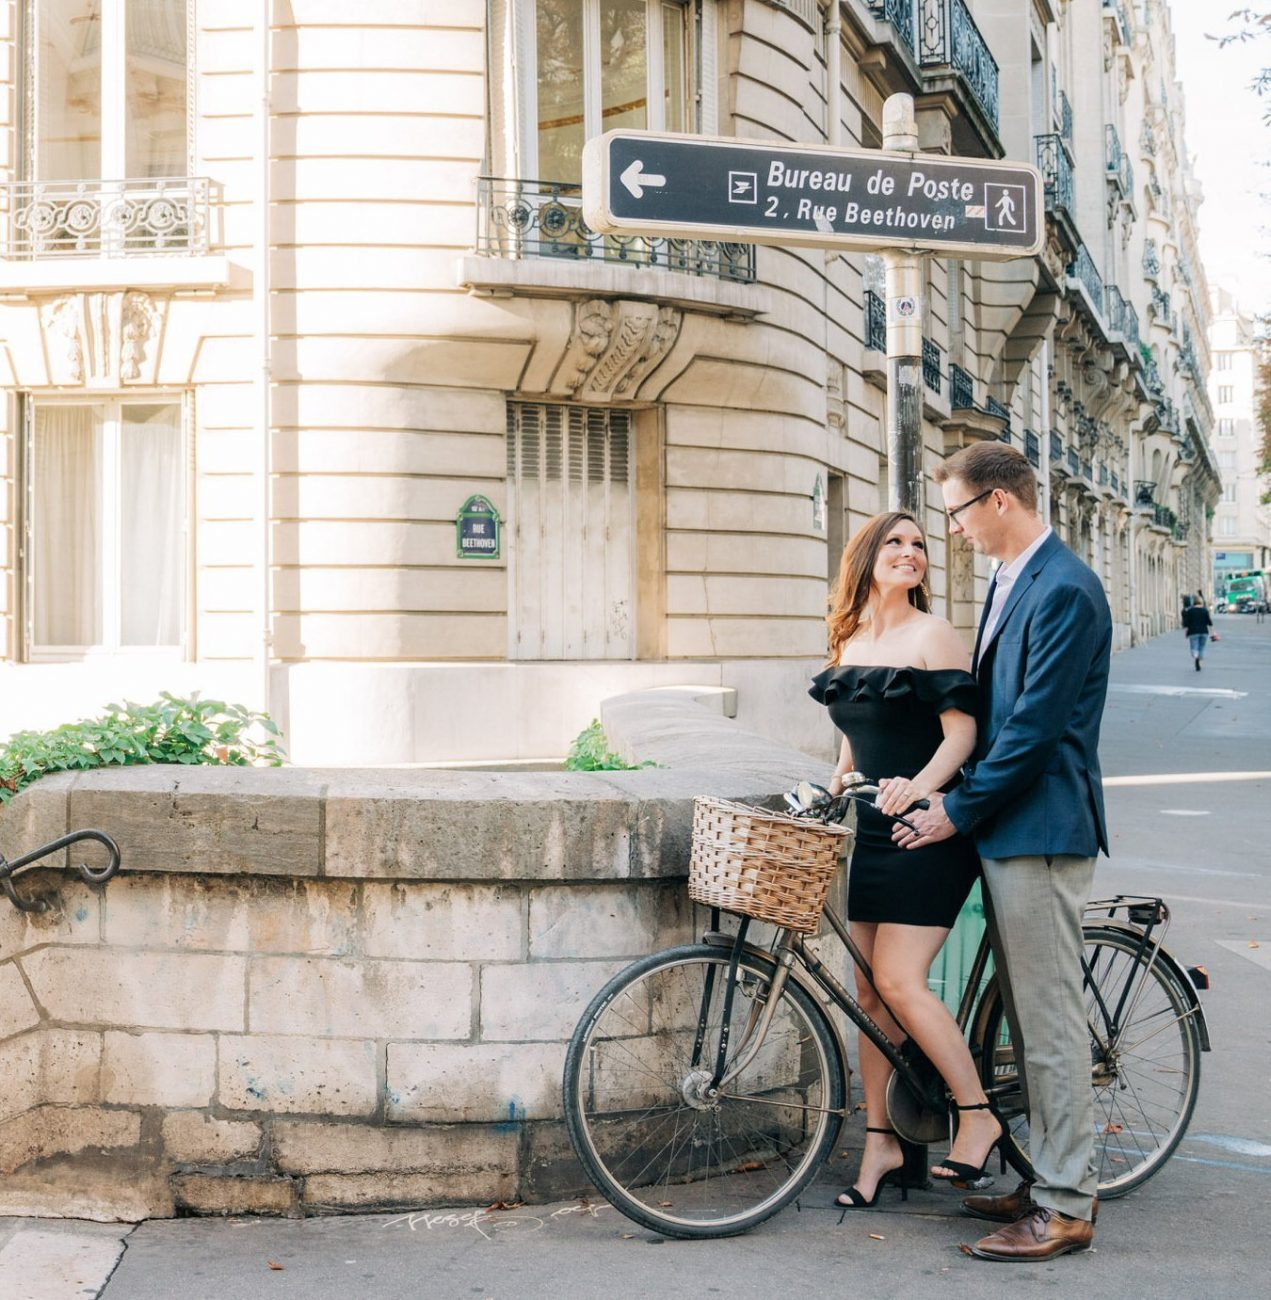 black dress blue blazer with bike in paris